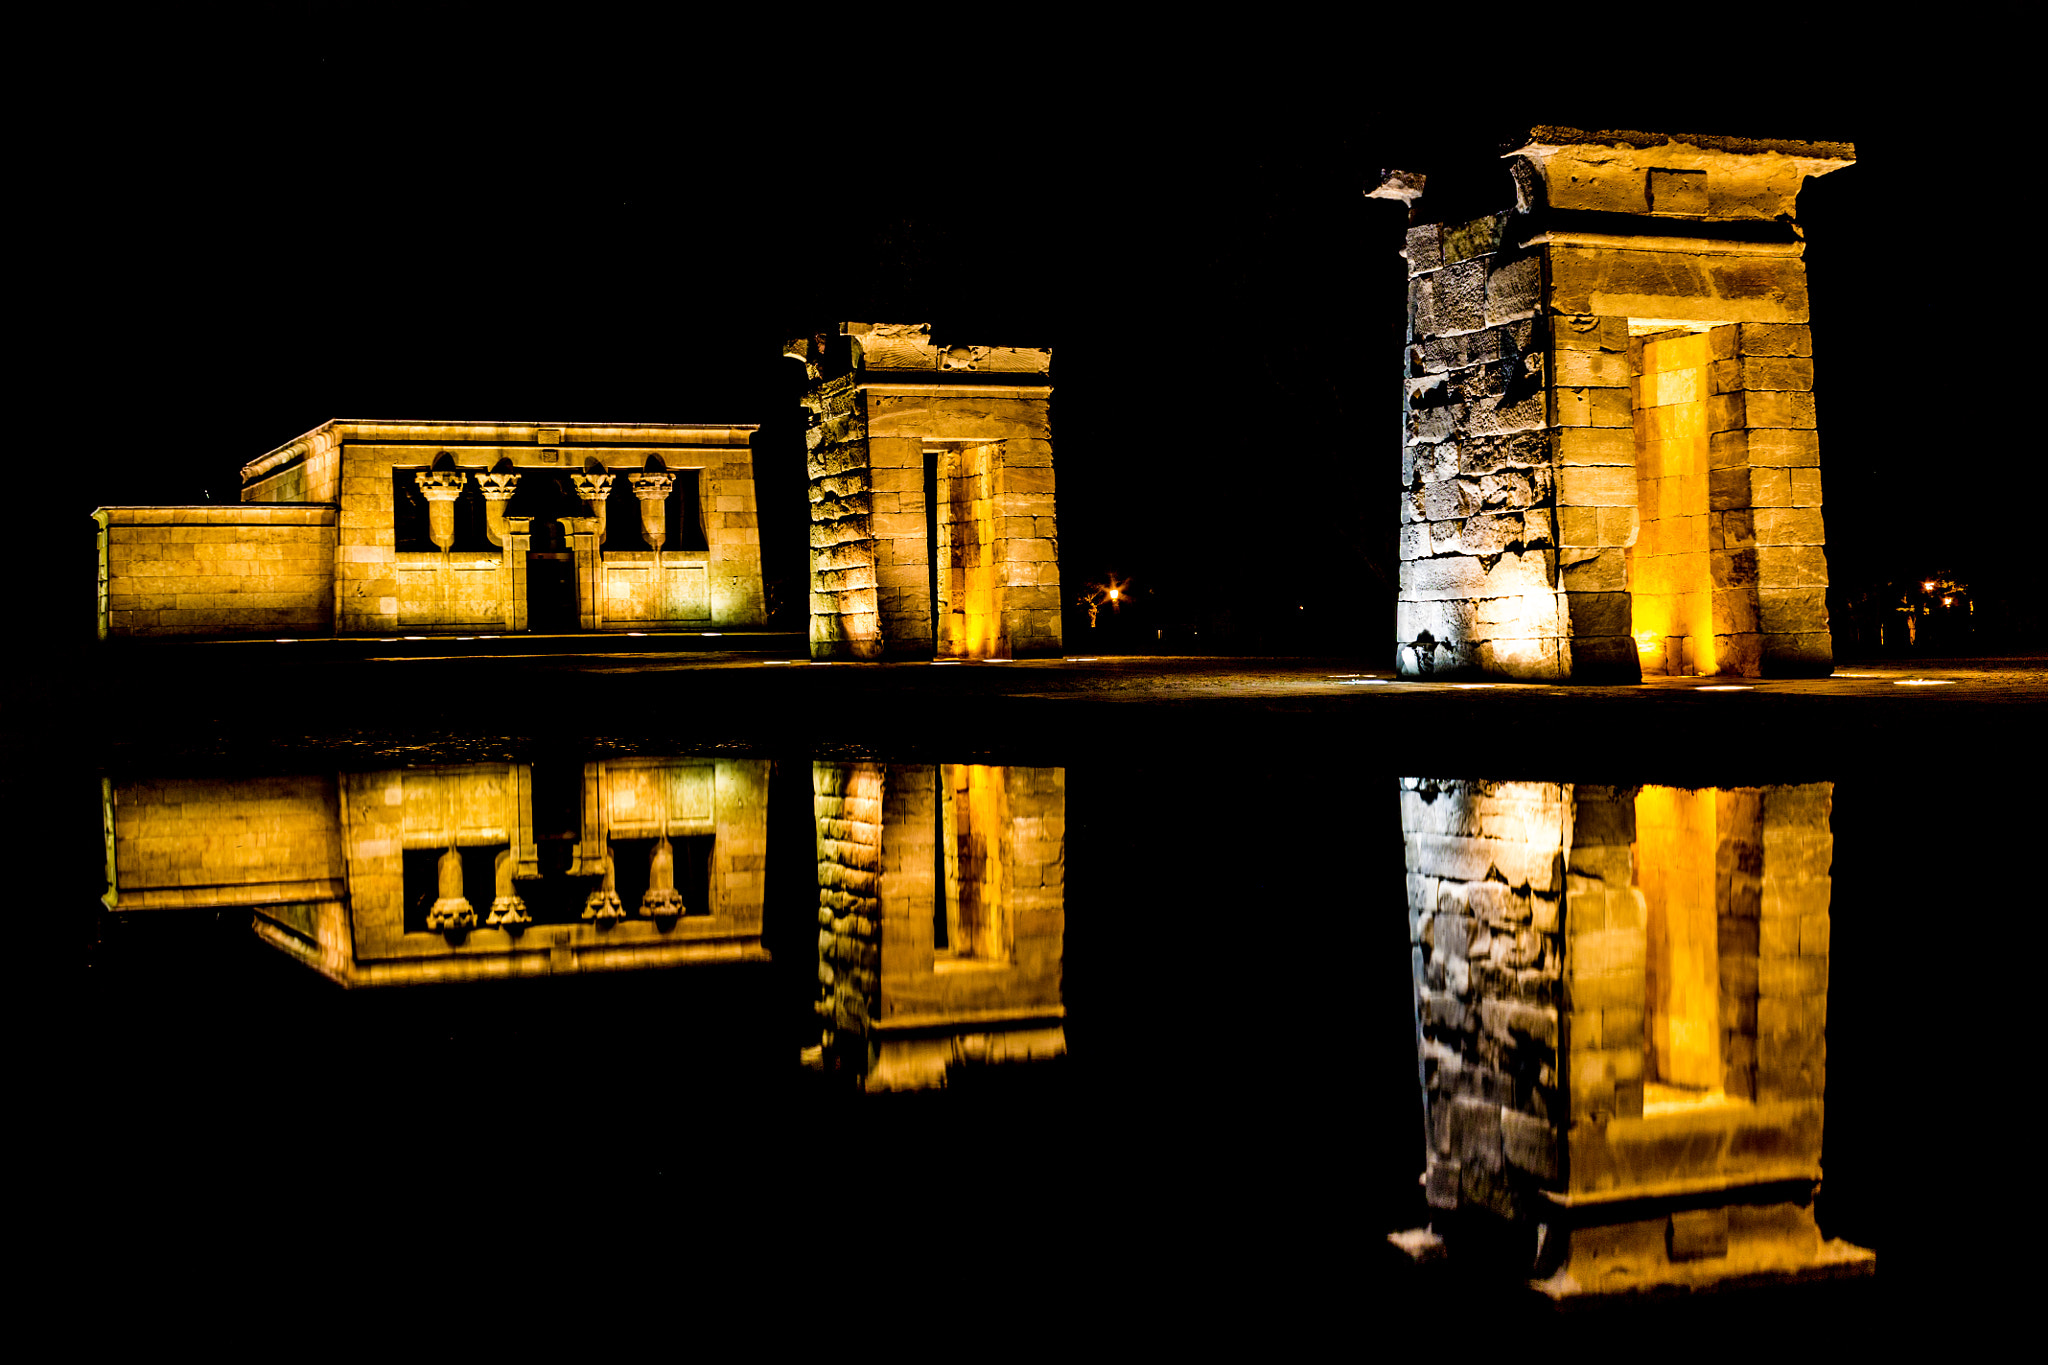 Photograph Debod II by Jose Caballero on 500px